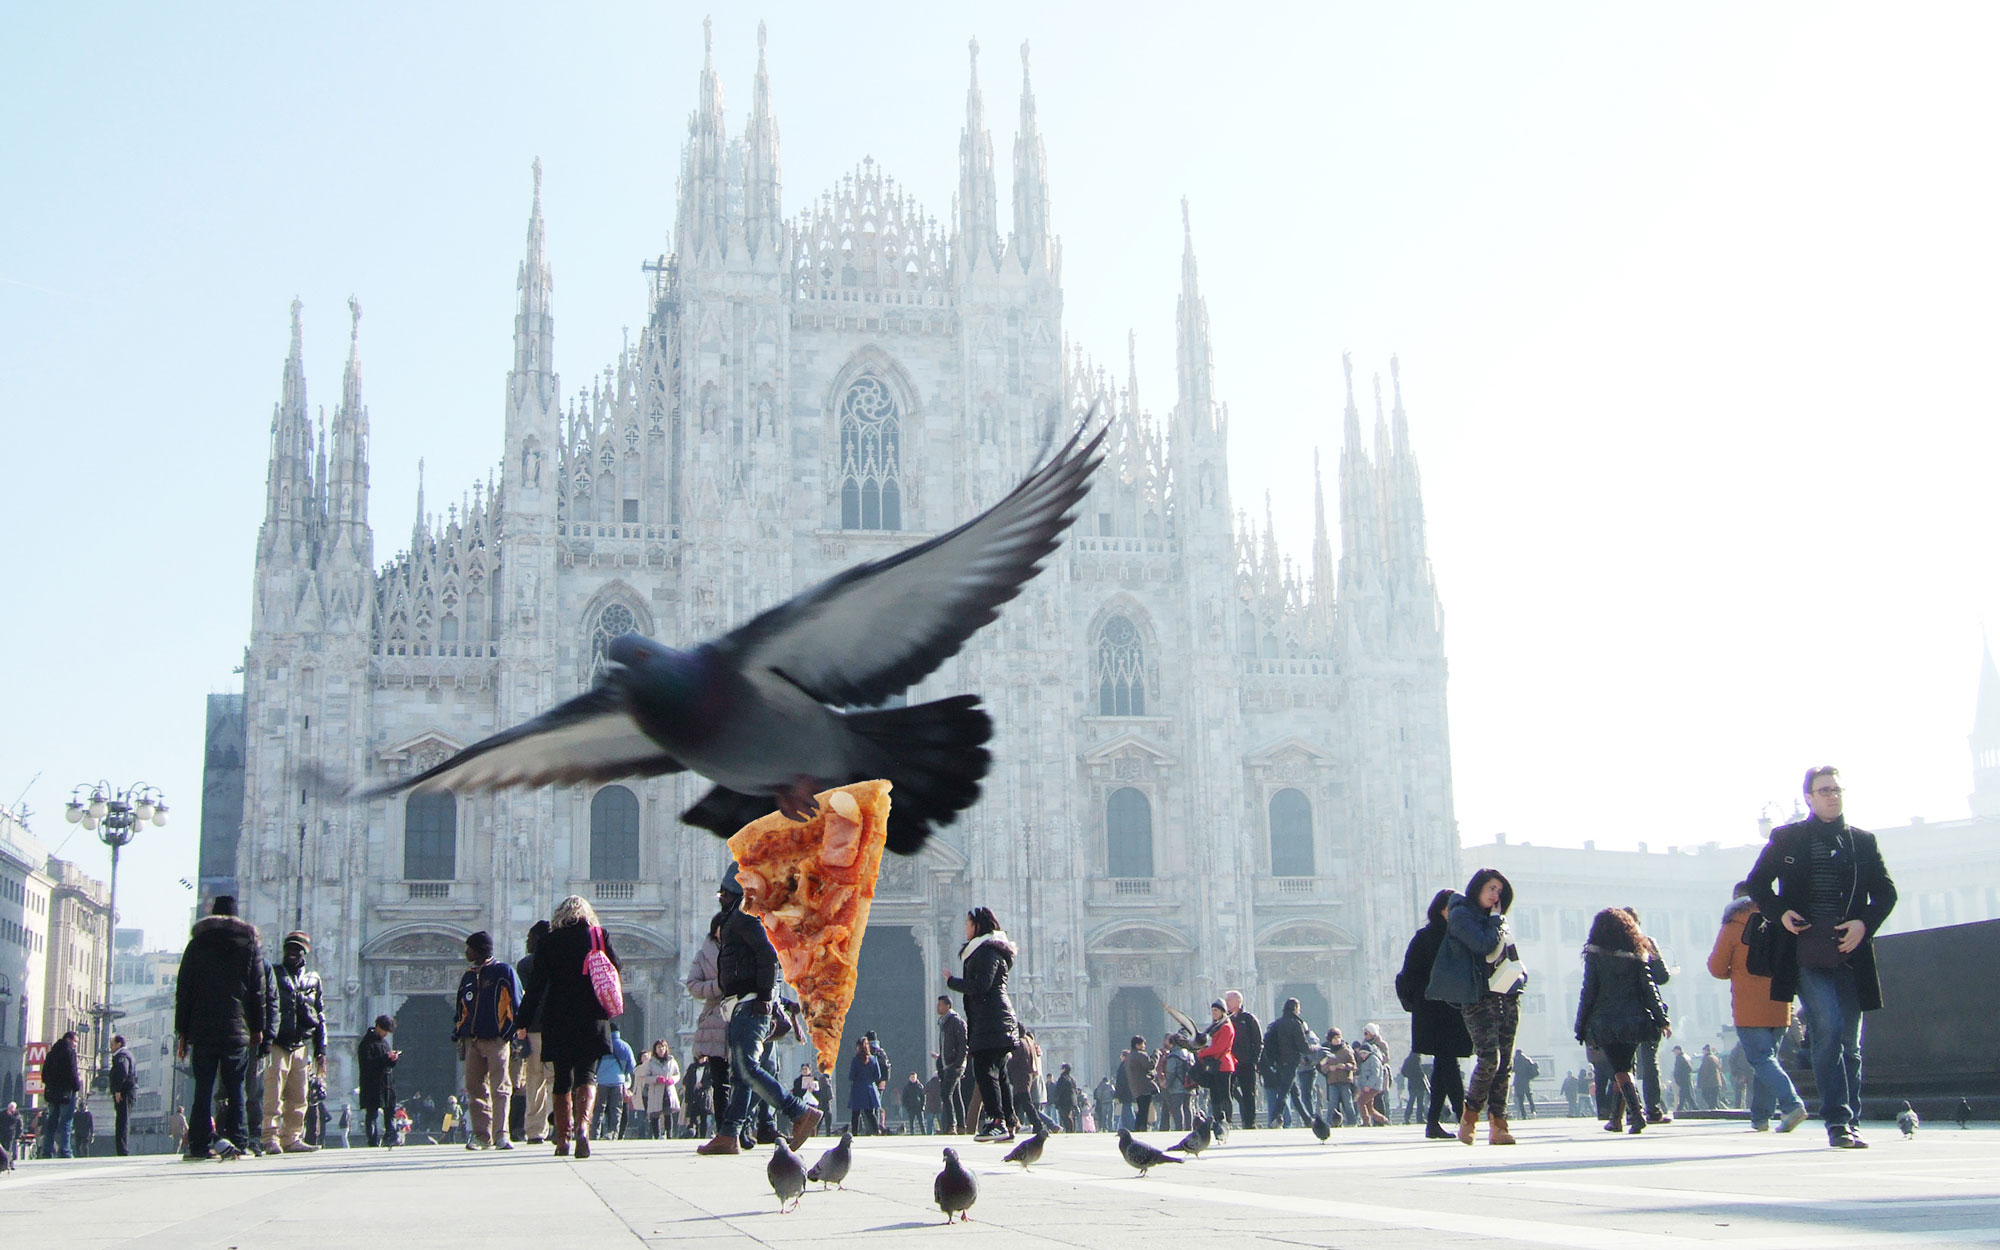 Domino's Pizza is Now in Italy